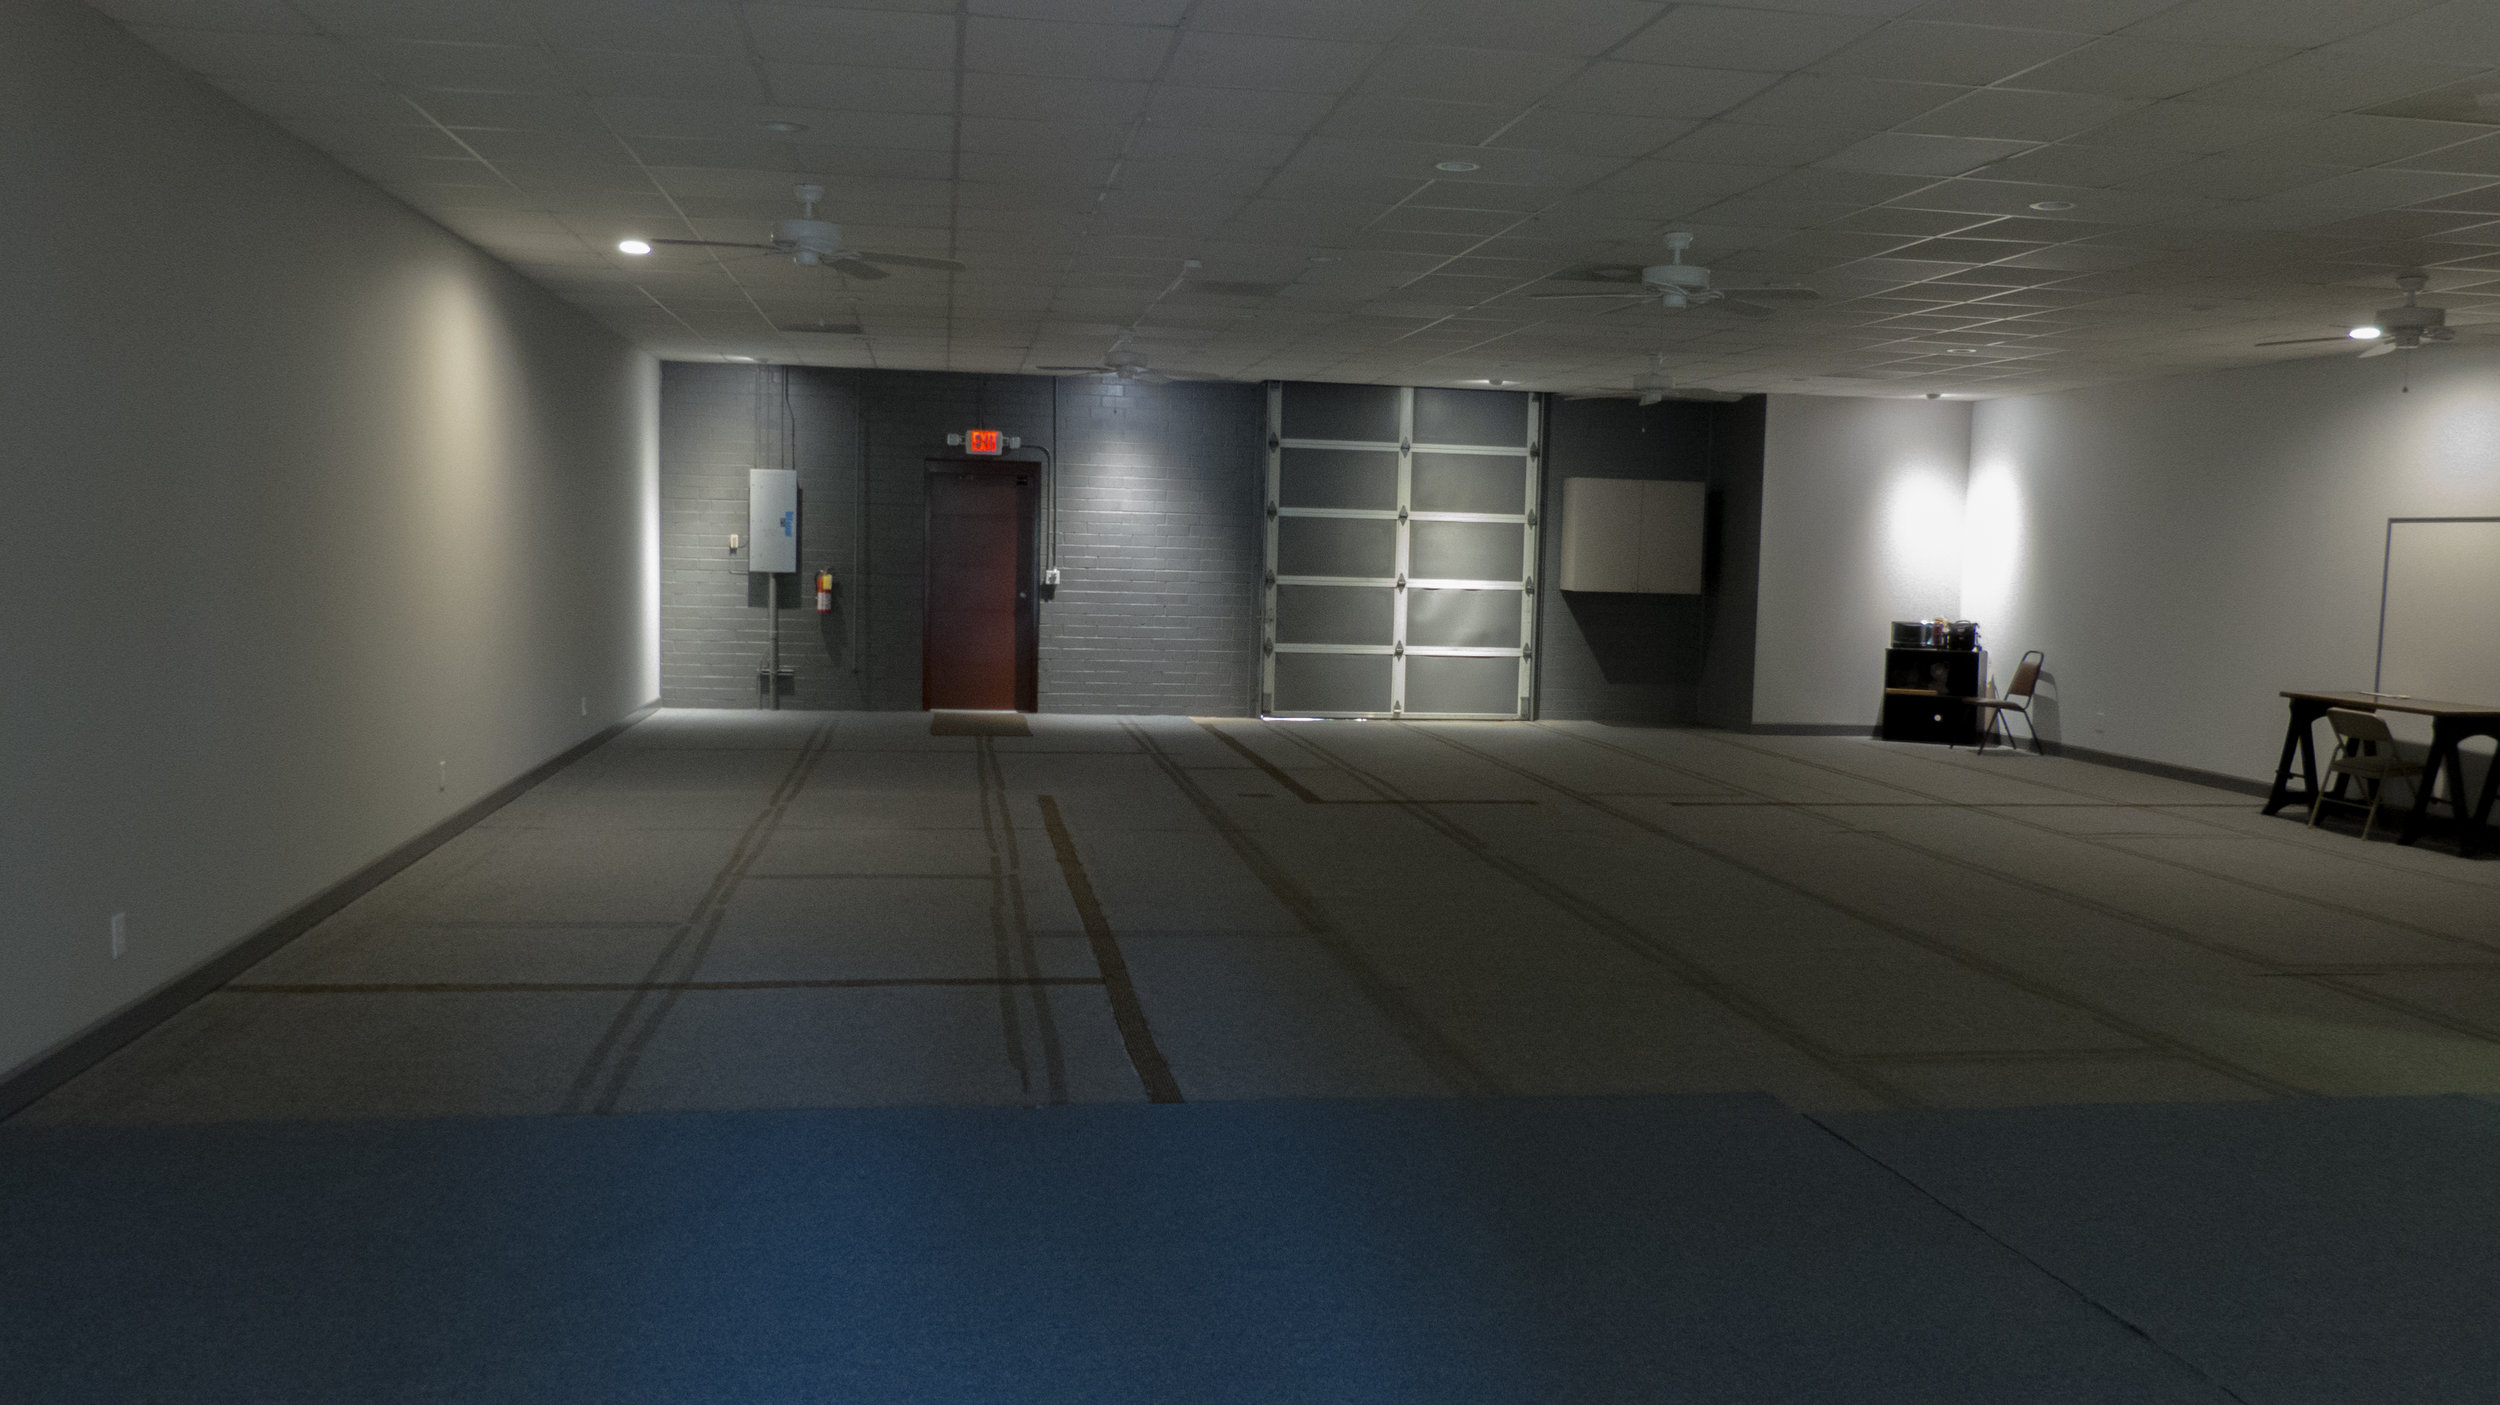 Warehouse space has low level lighting option